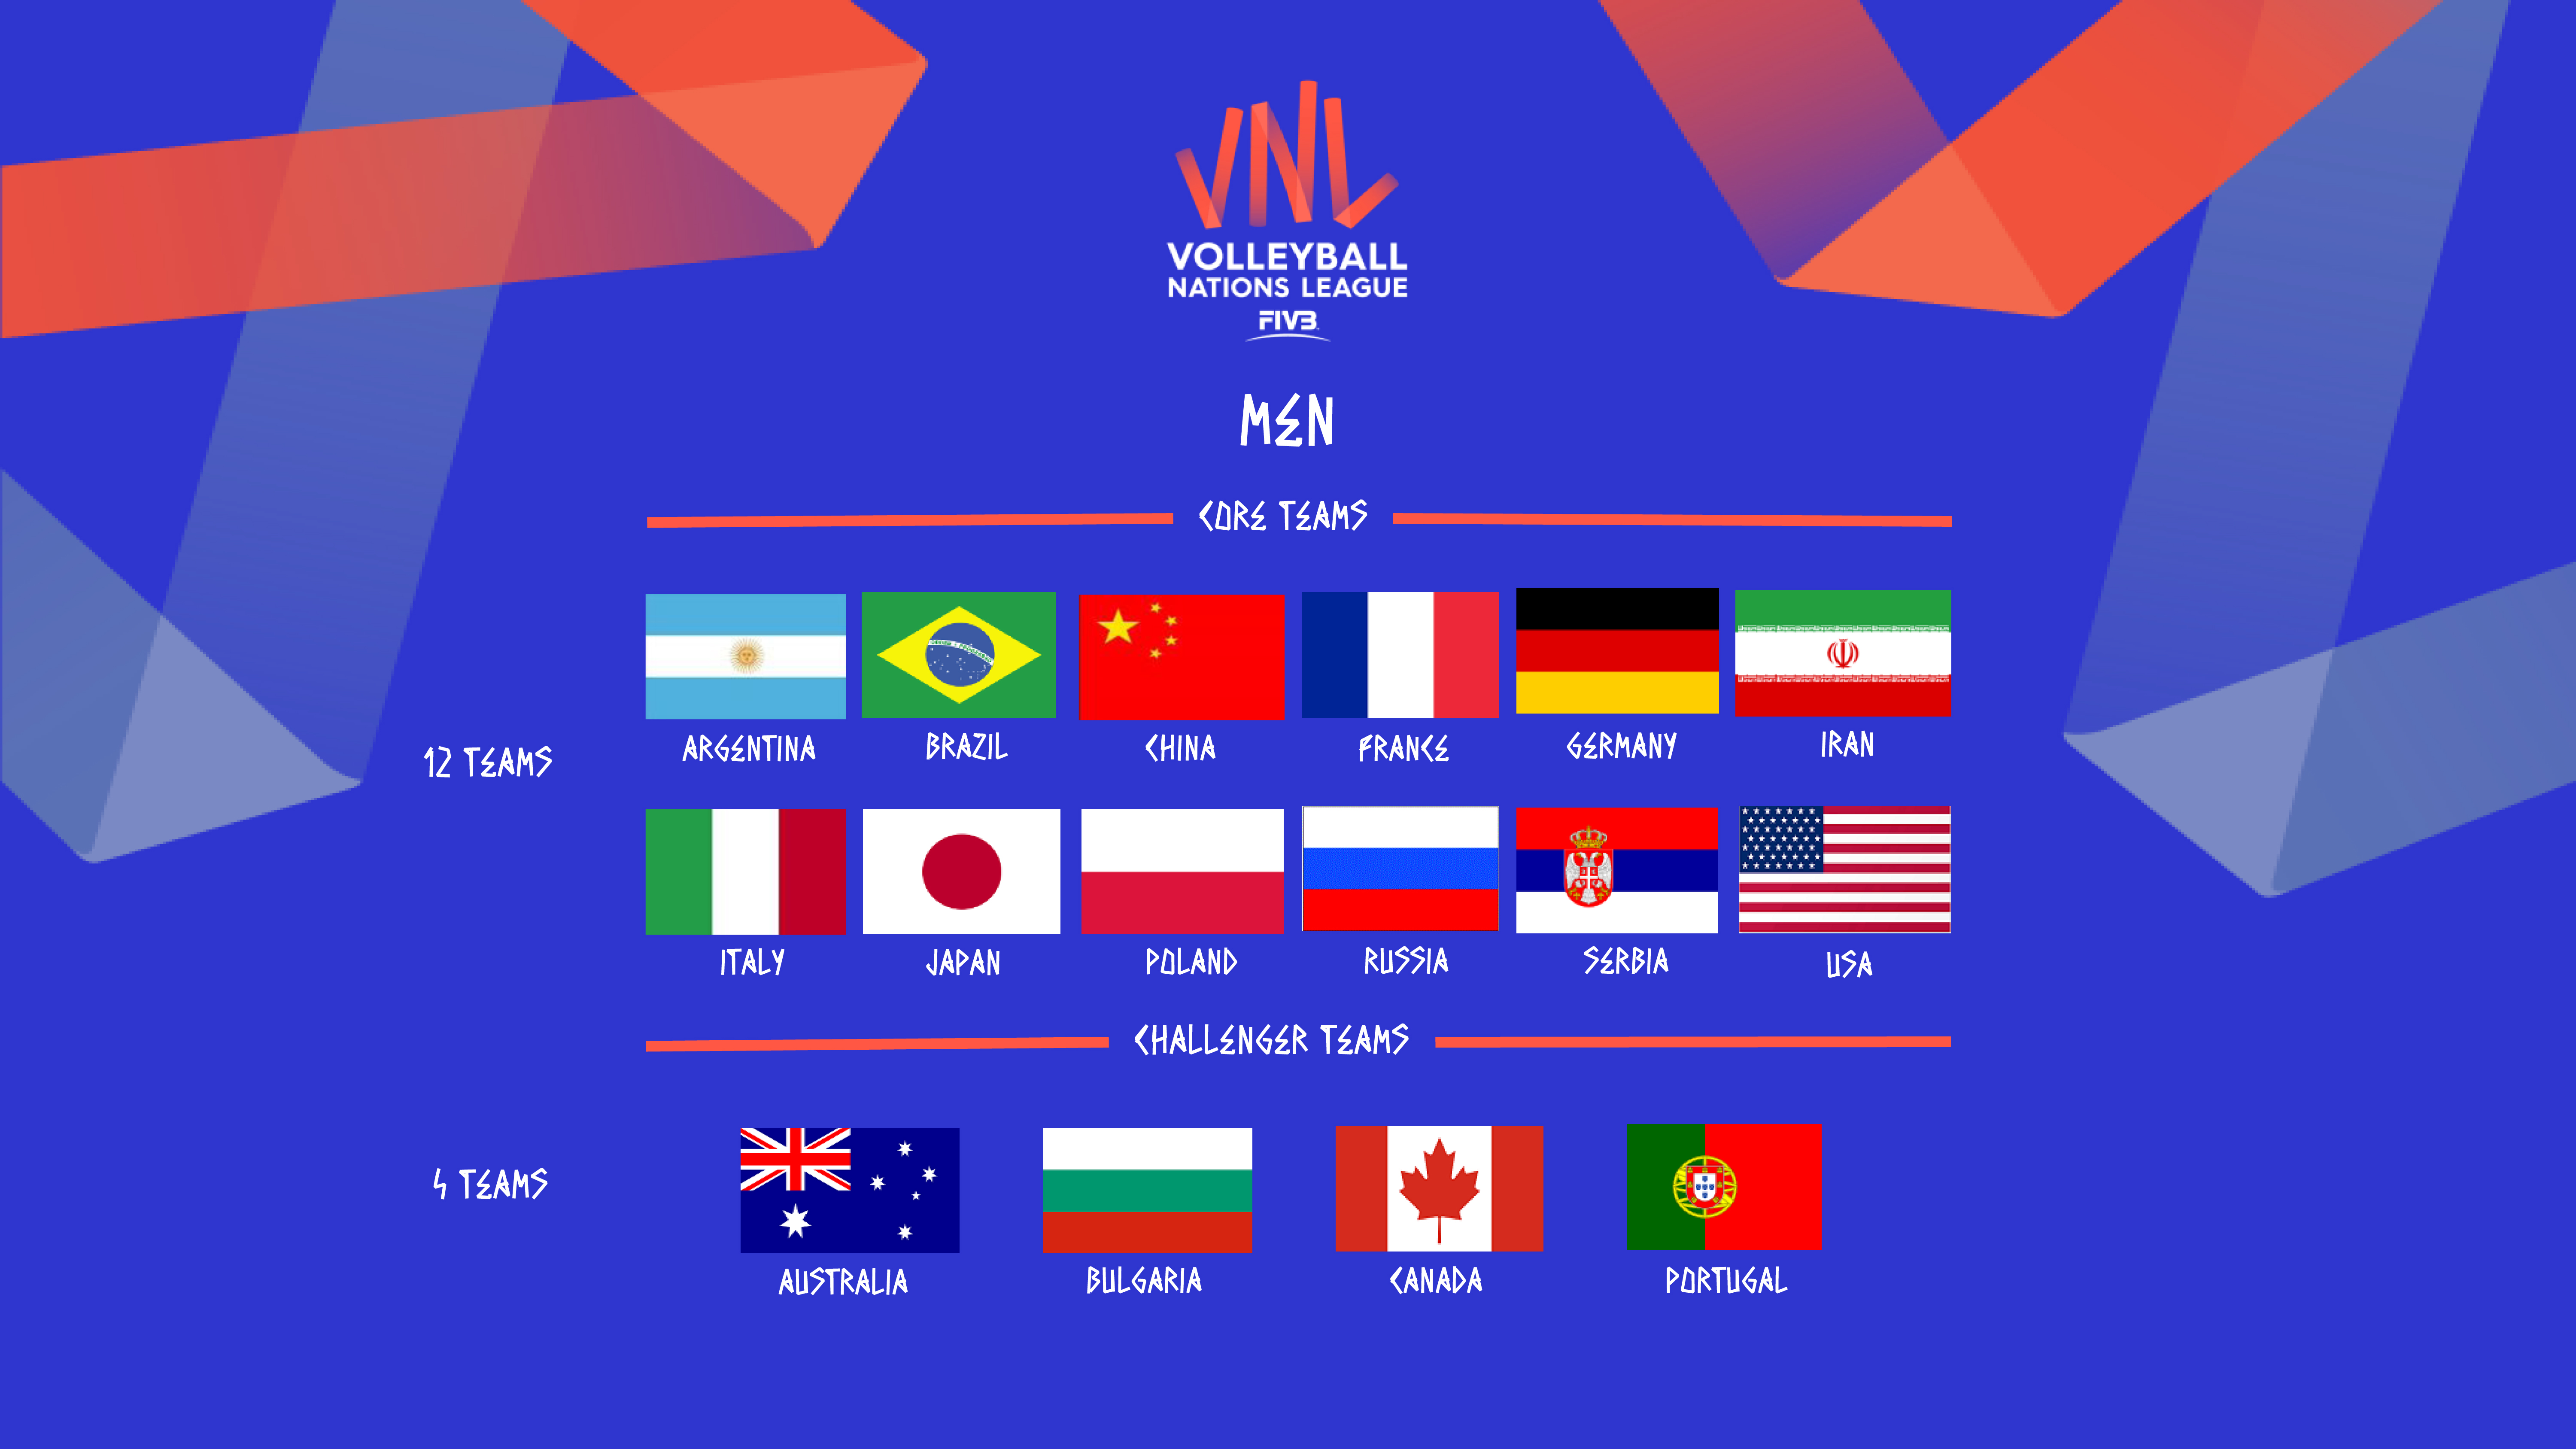 2020 FIVB Volleyball Men's Nations League